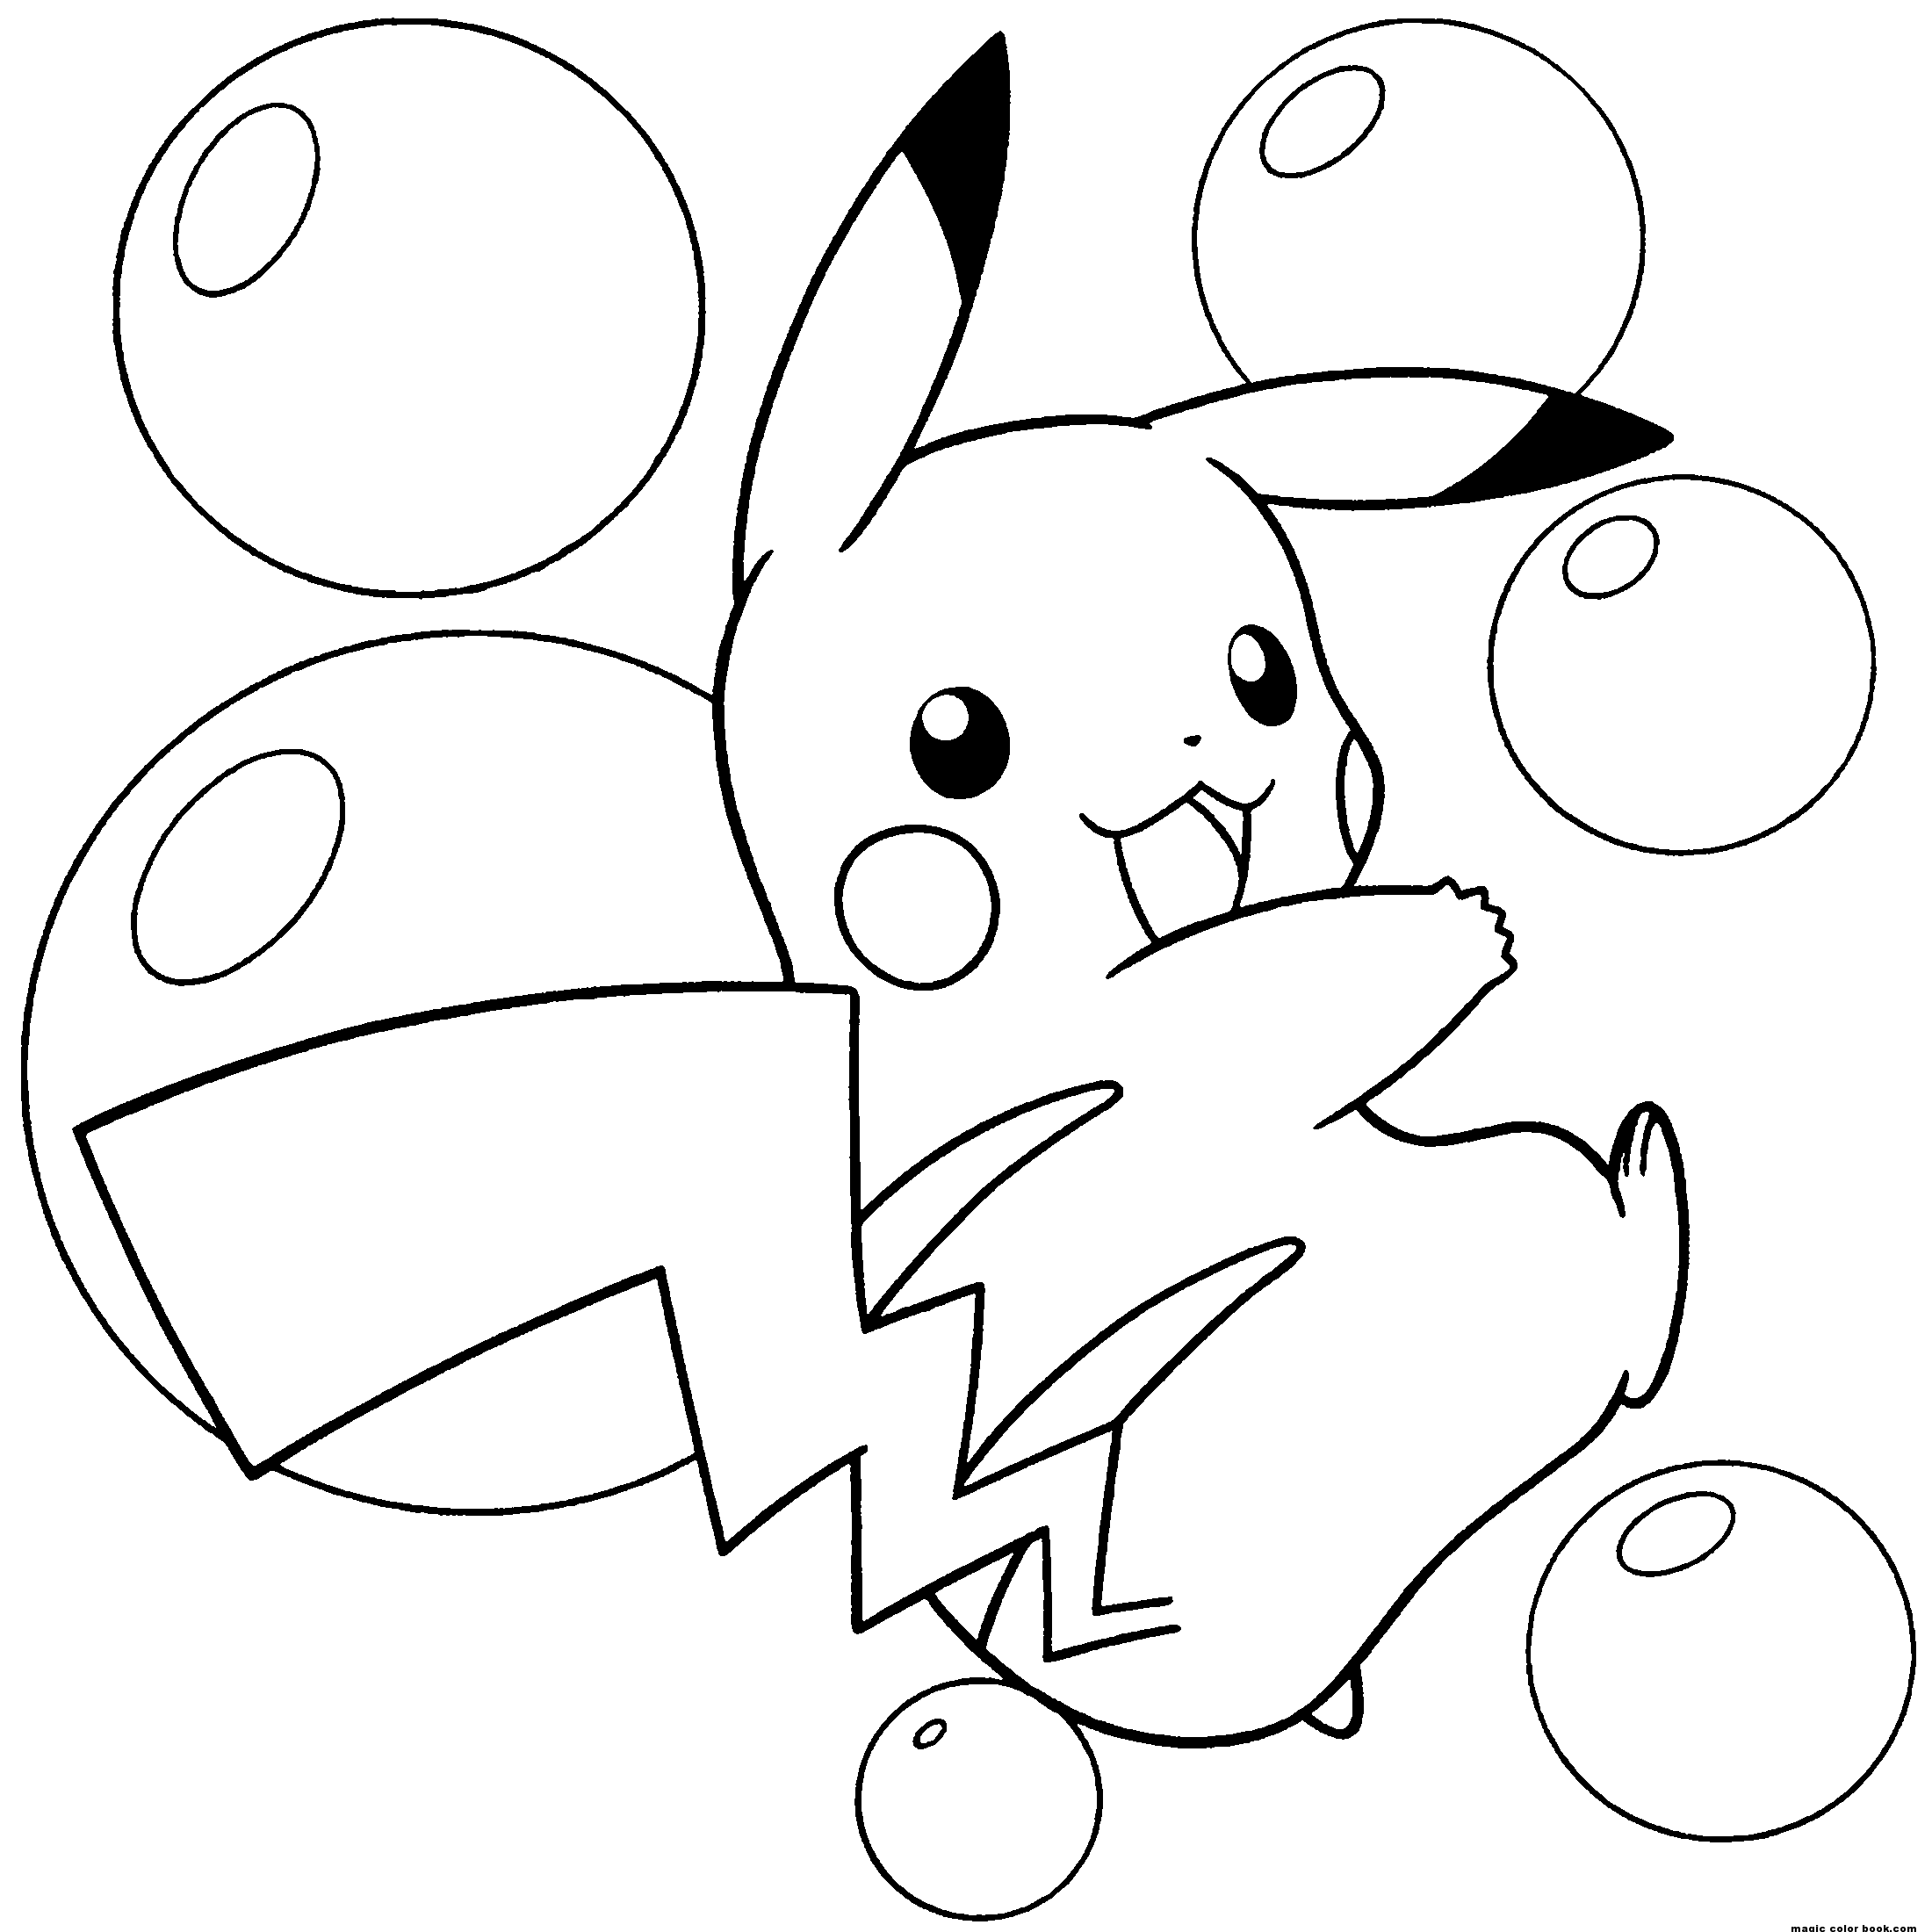 Video Game Coloring Pages | Free download best Video Game Coloring ...